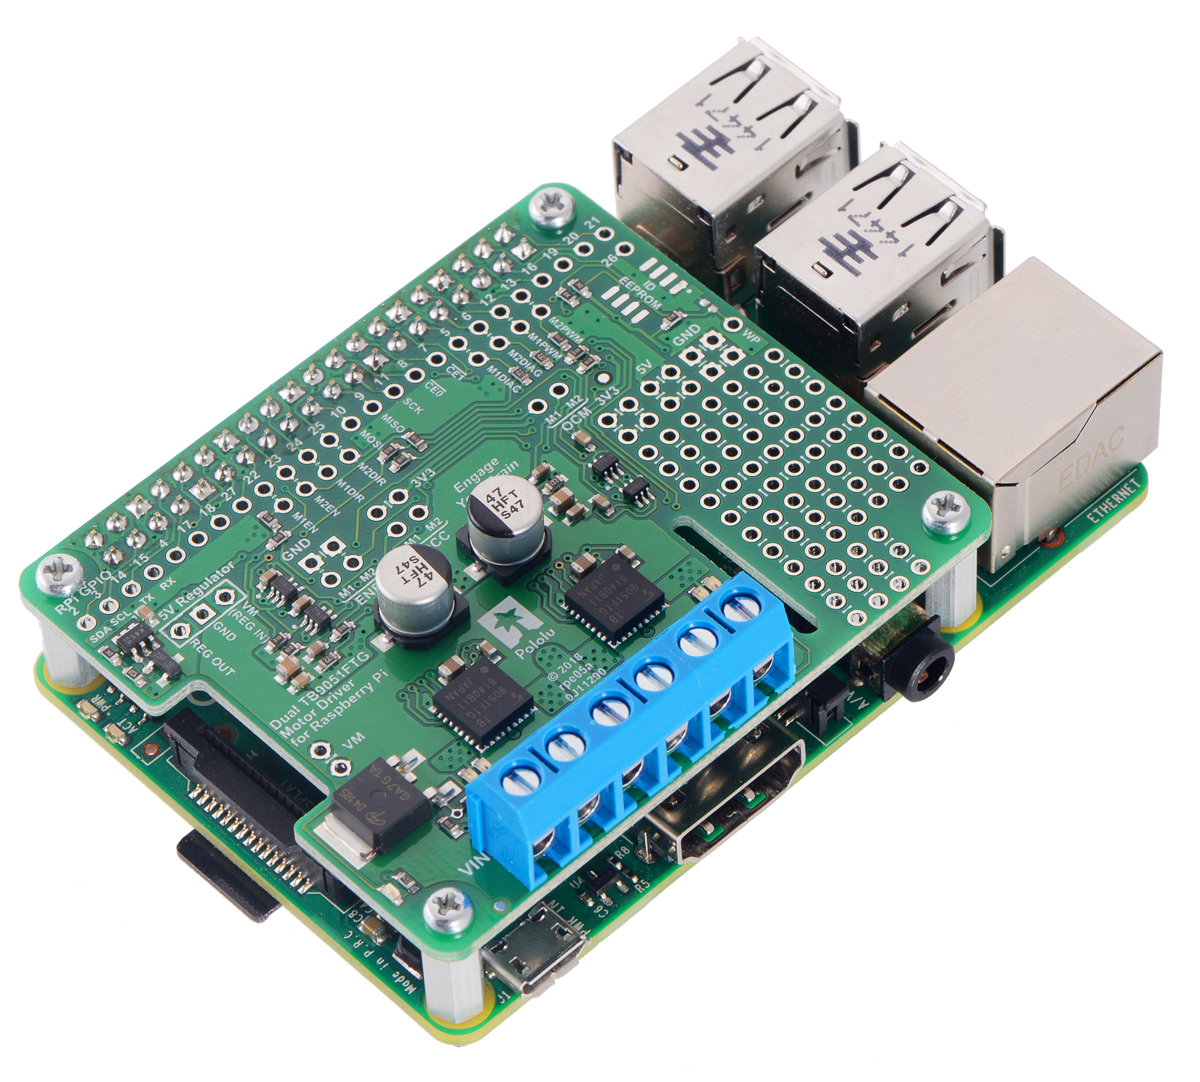 Pololu Dual Tb9051ftg Motor Driver For Raspberry Pi Assembled Ic Power Supply By 78xx 2013 Electronic Projects Circuits Single However The Pin Mappings Can Be Customized If Defaults Are Not Convenient And Other Control Inputs Outputs Of Ics Accessible On